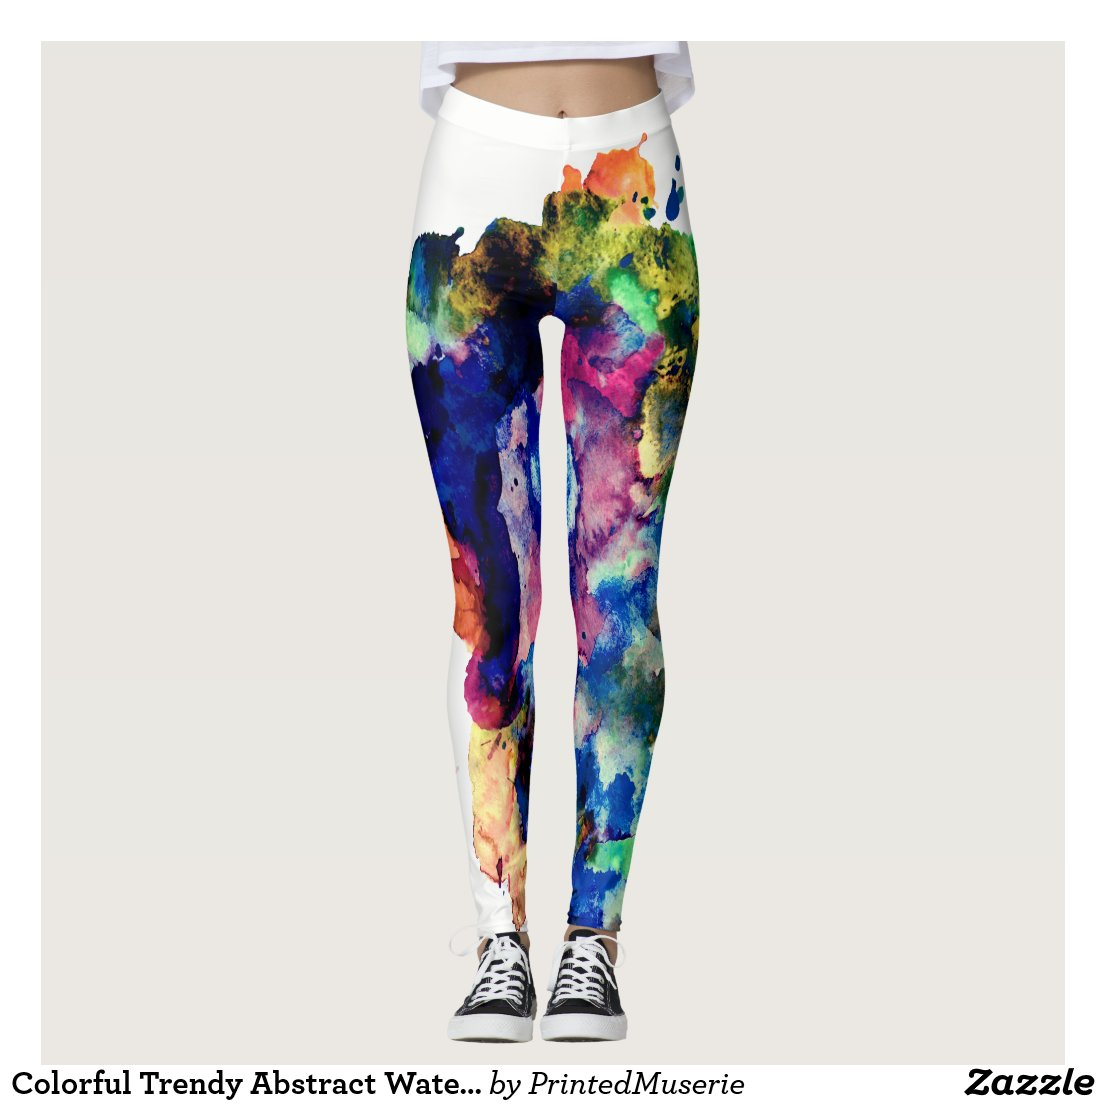 Colourful Trendy Abstract Watercolour Paint Leggings